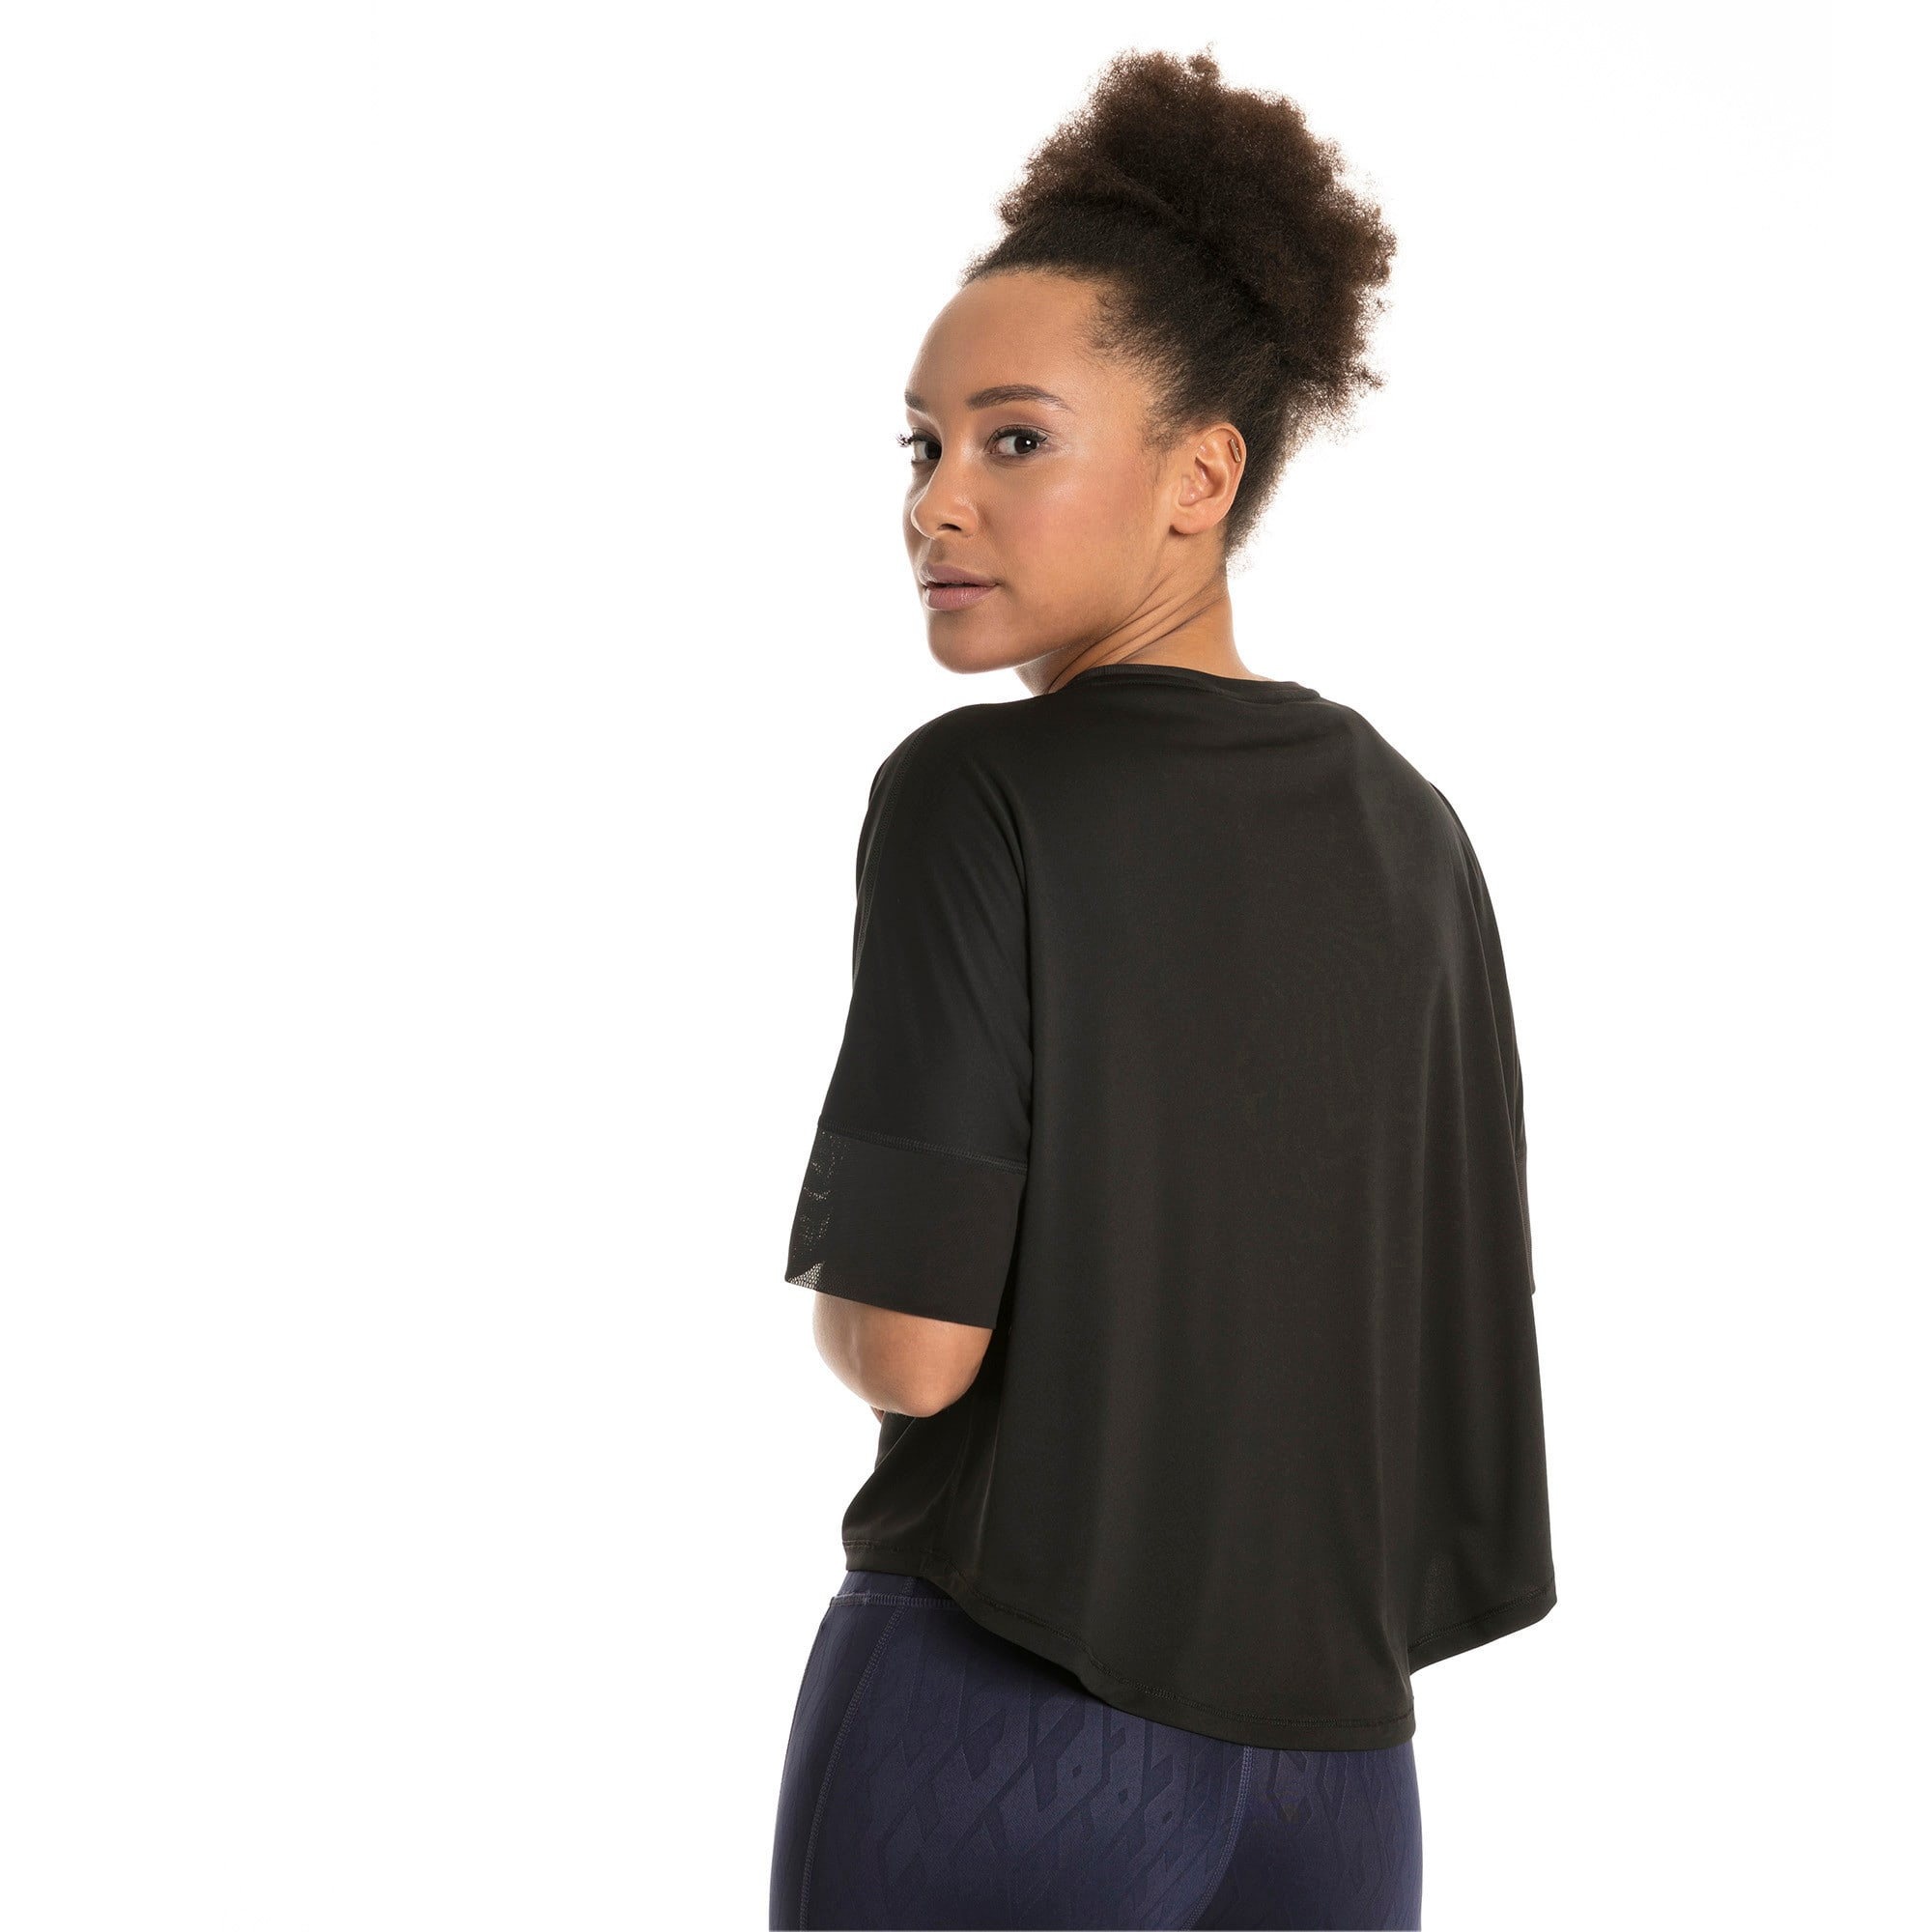 Thumbnail 3 of Explosive Women's Training Top, Puma Black, medium-IND